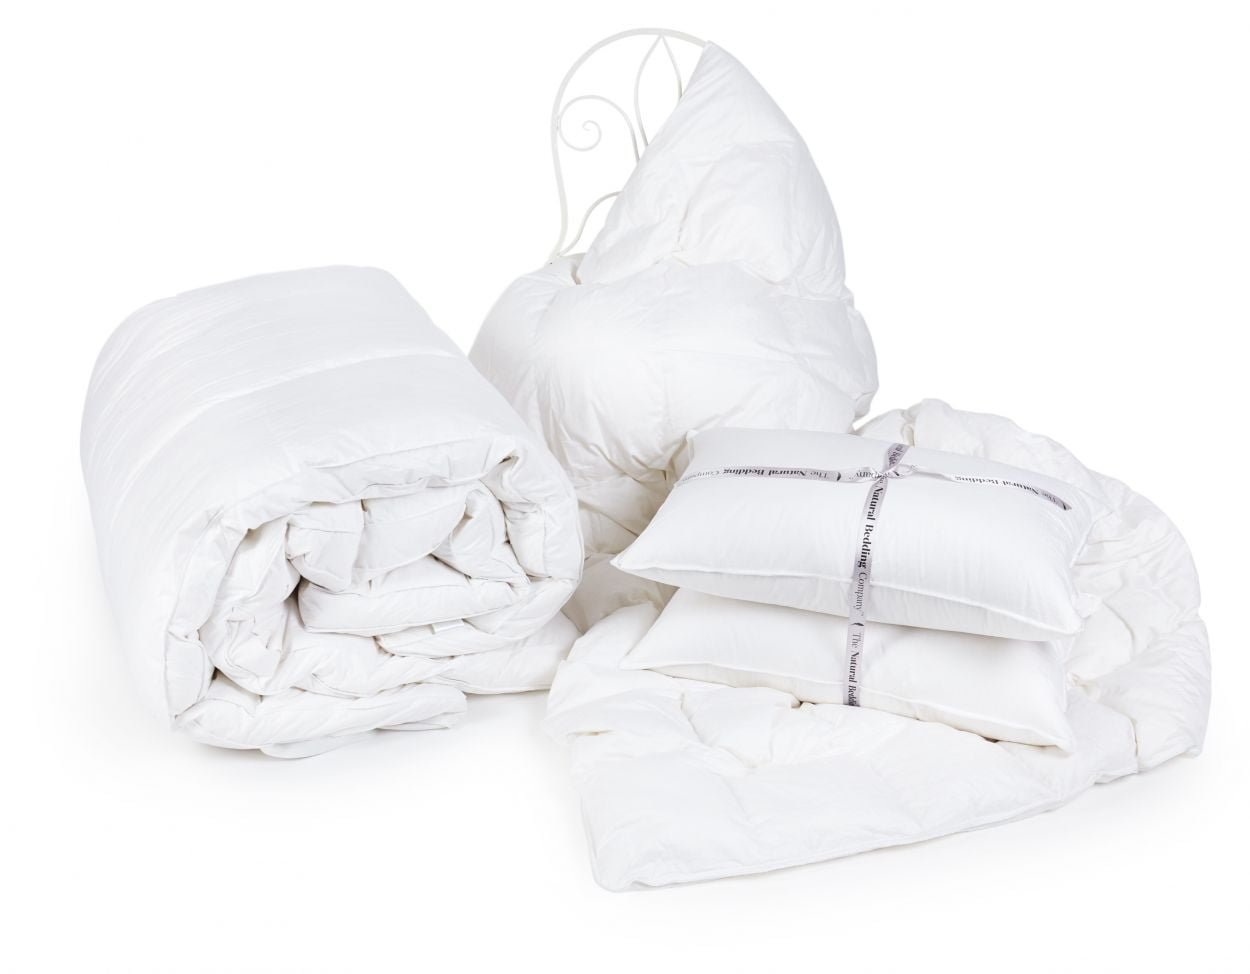 Canadian Bundle Pillows Duvet And Mattress Topper The